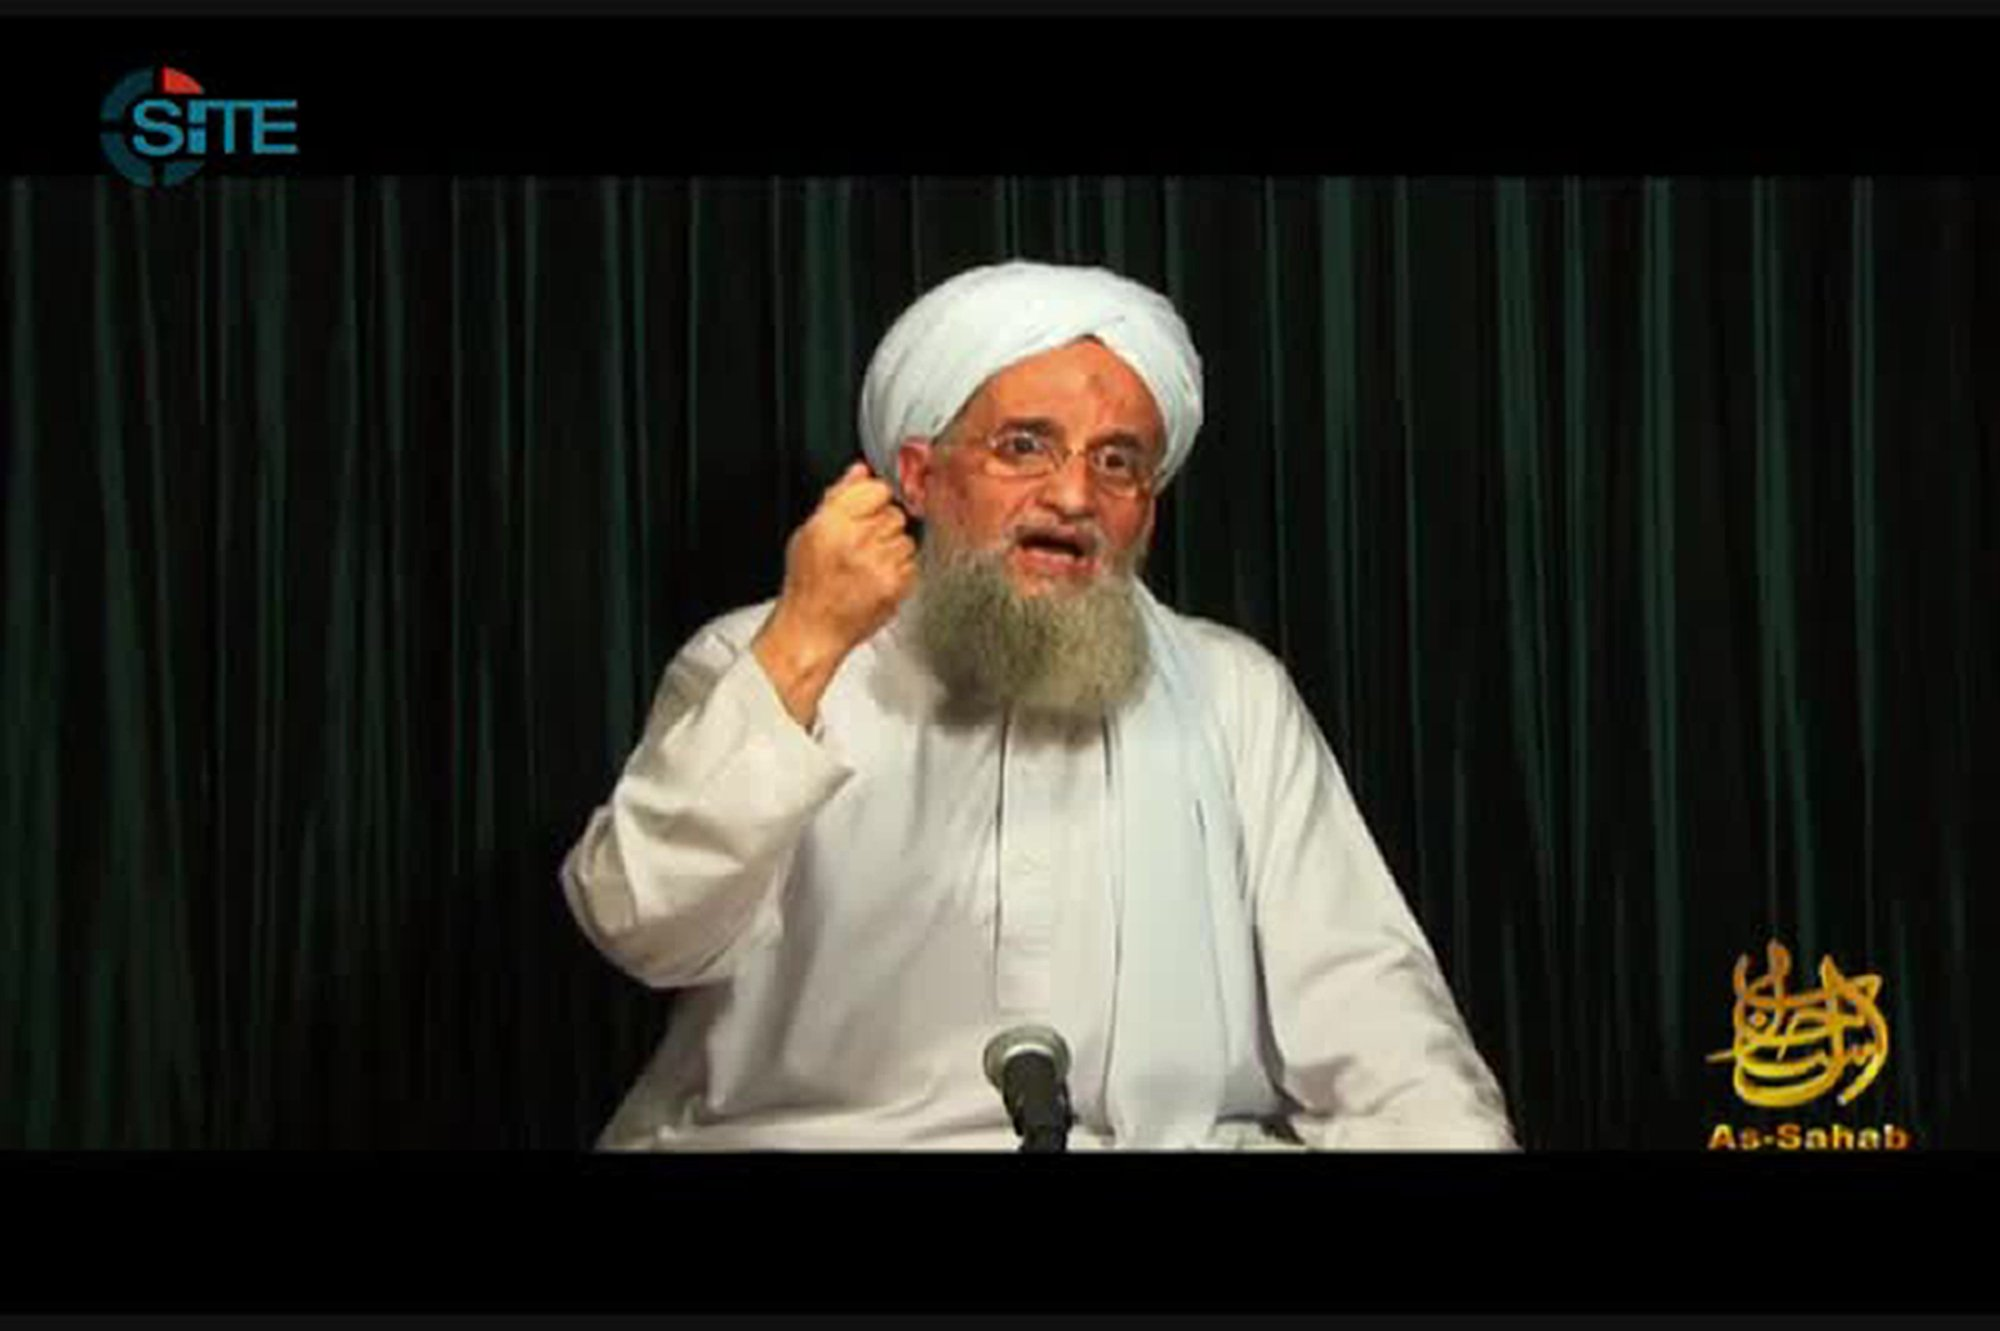 A still image from video obtained on Oct. 26, 2012 courtesy of the Site Intelligence Group showing Al-Qaeda leader Ayman al-Zawahiri speaking from an undisclosed location.